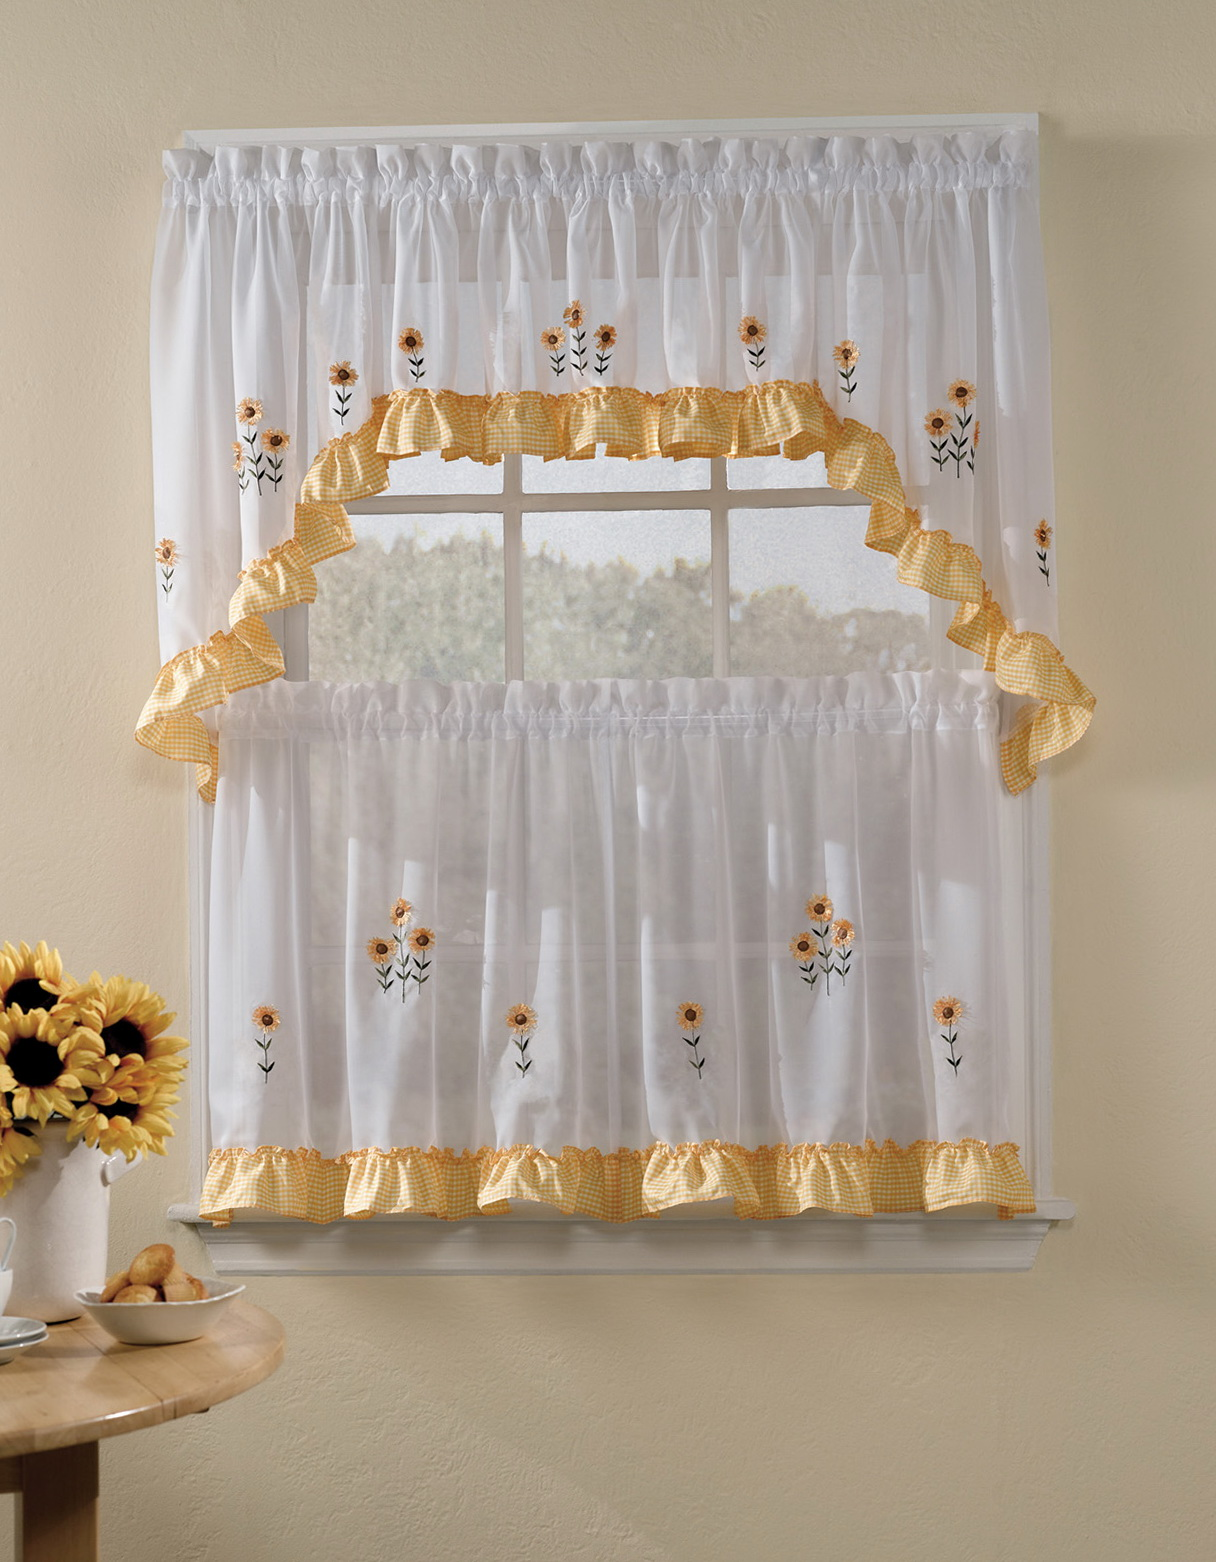 Kitchen curtains ideas pictures home design ideas - Kitchen valance ideas ...